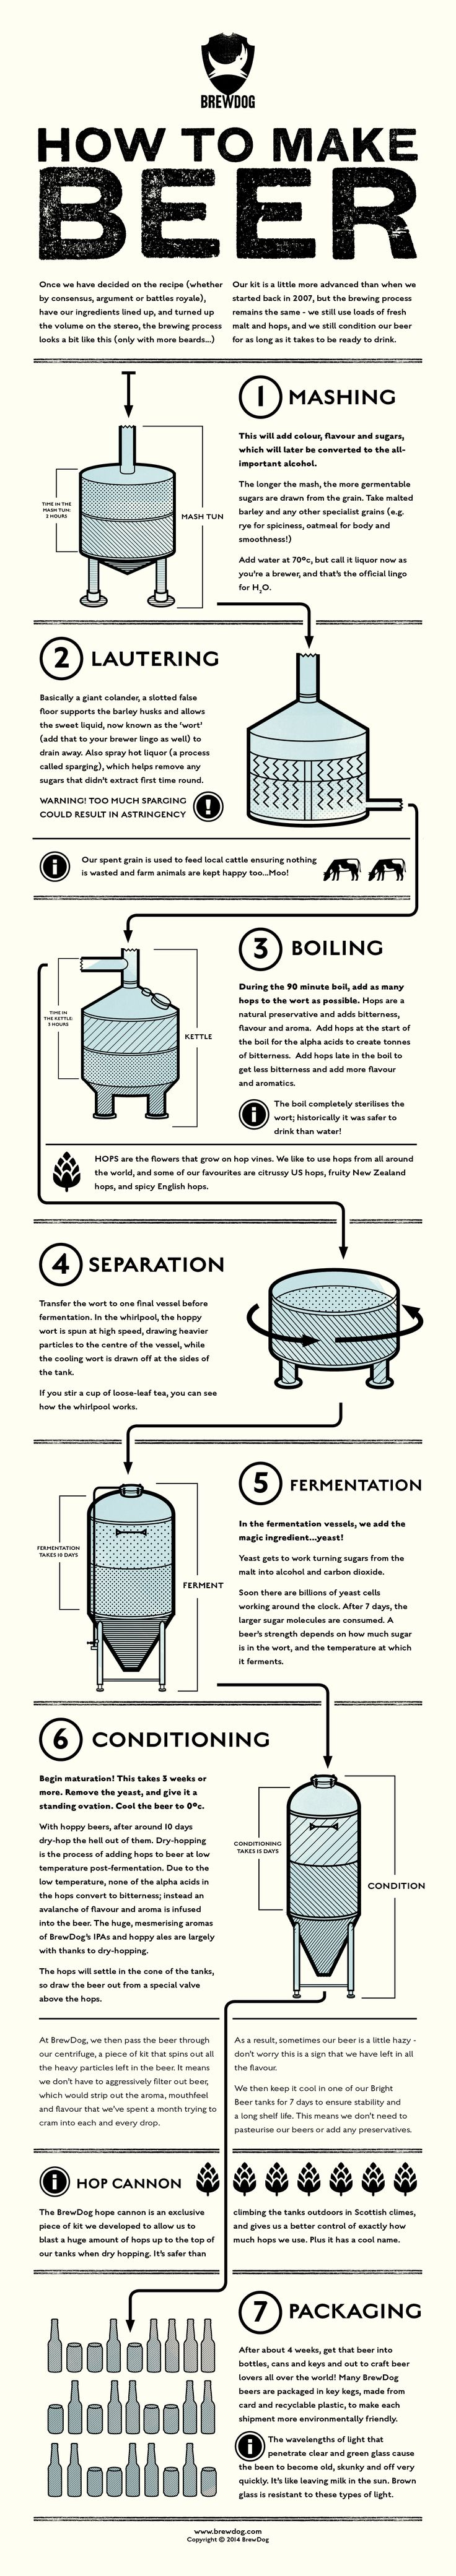 Good guys of BrewDog shared with us this great infographic! So, if you ever find yourself bold enough to start a microbrewery, here´s the outline of the process you´ll have to endure.